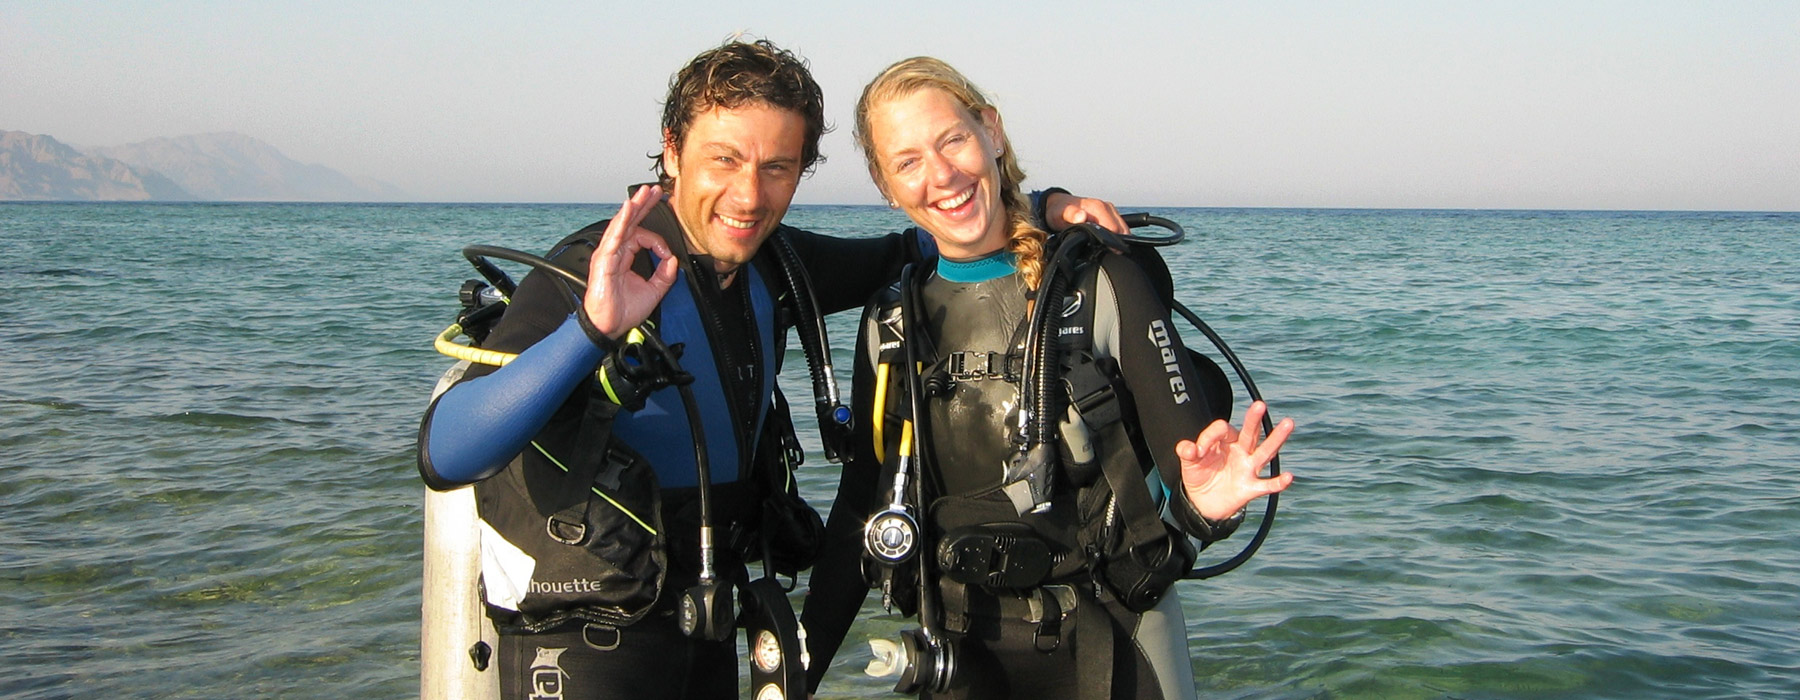 diving-in-dahab-annette-olivier